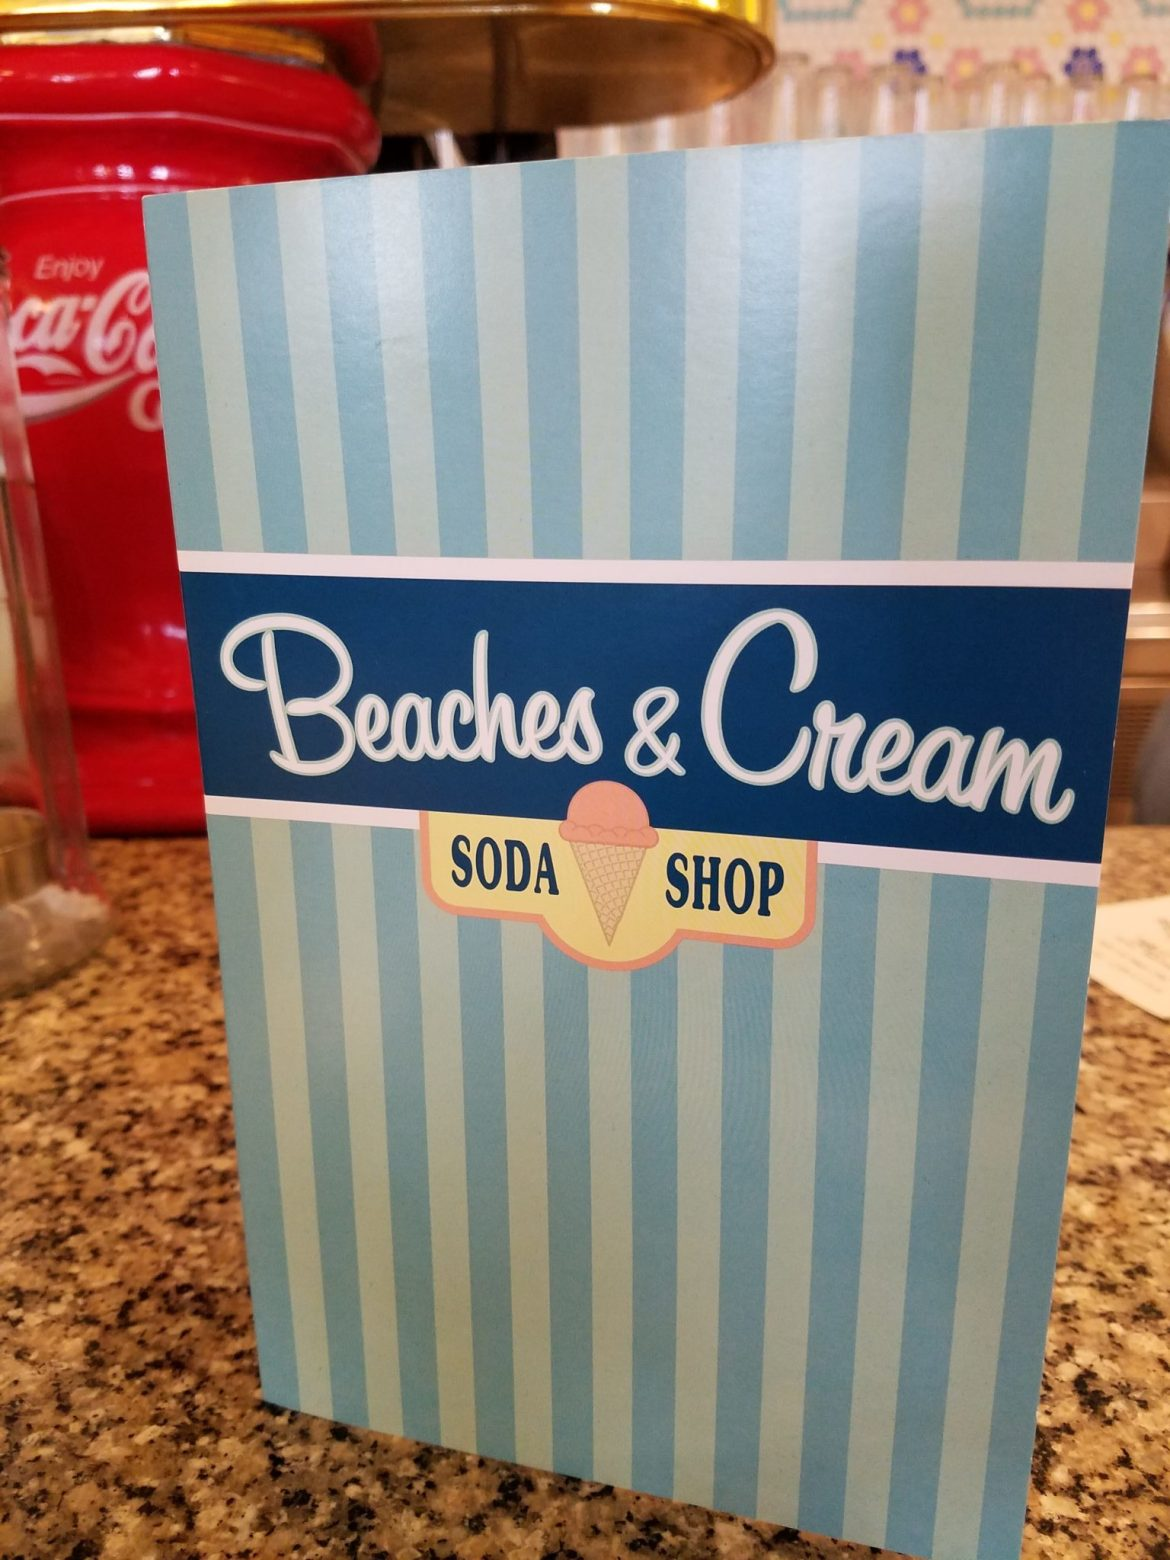 Fall Flavors at the Beaches and Cream Soda Shop